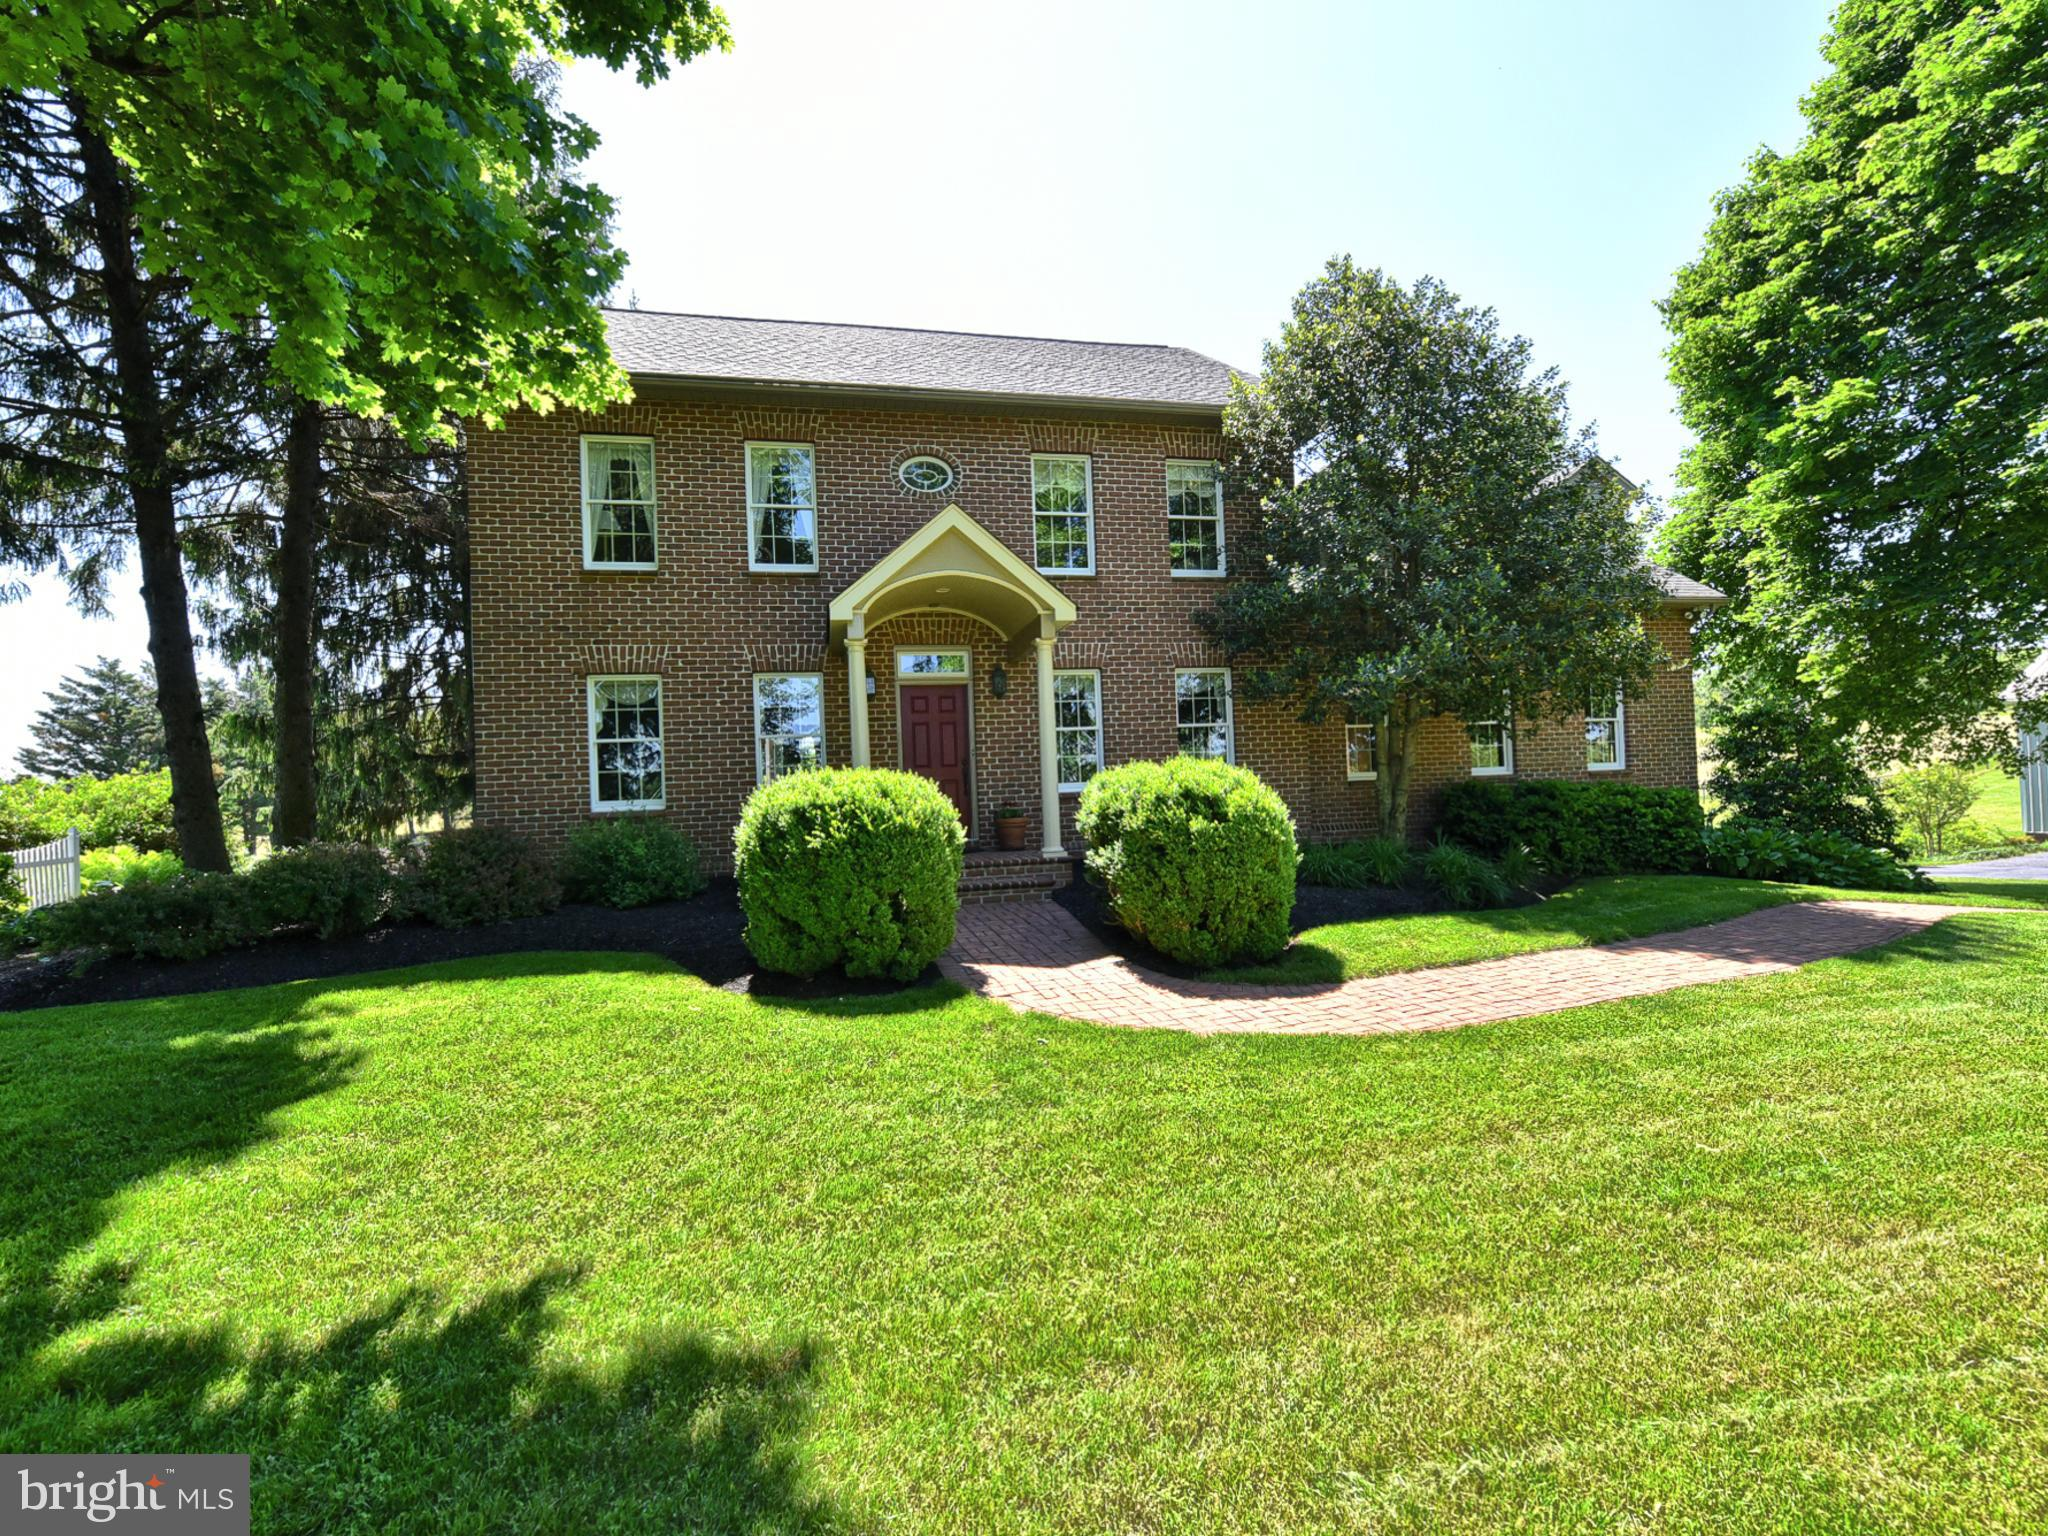 11825 SIMPSONS MILL ROAD, KEYMAR, MD 21757